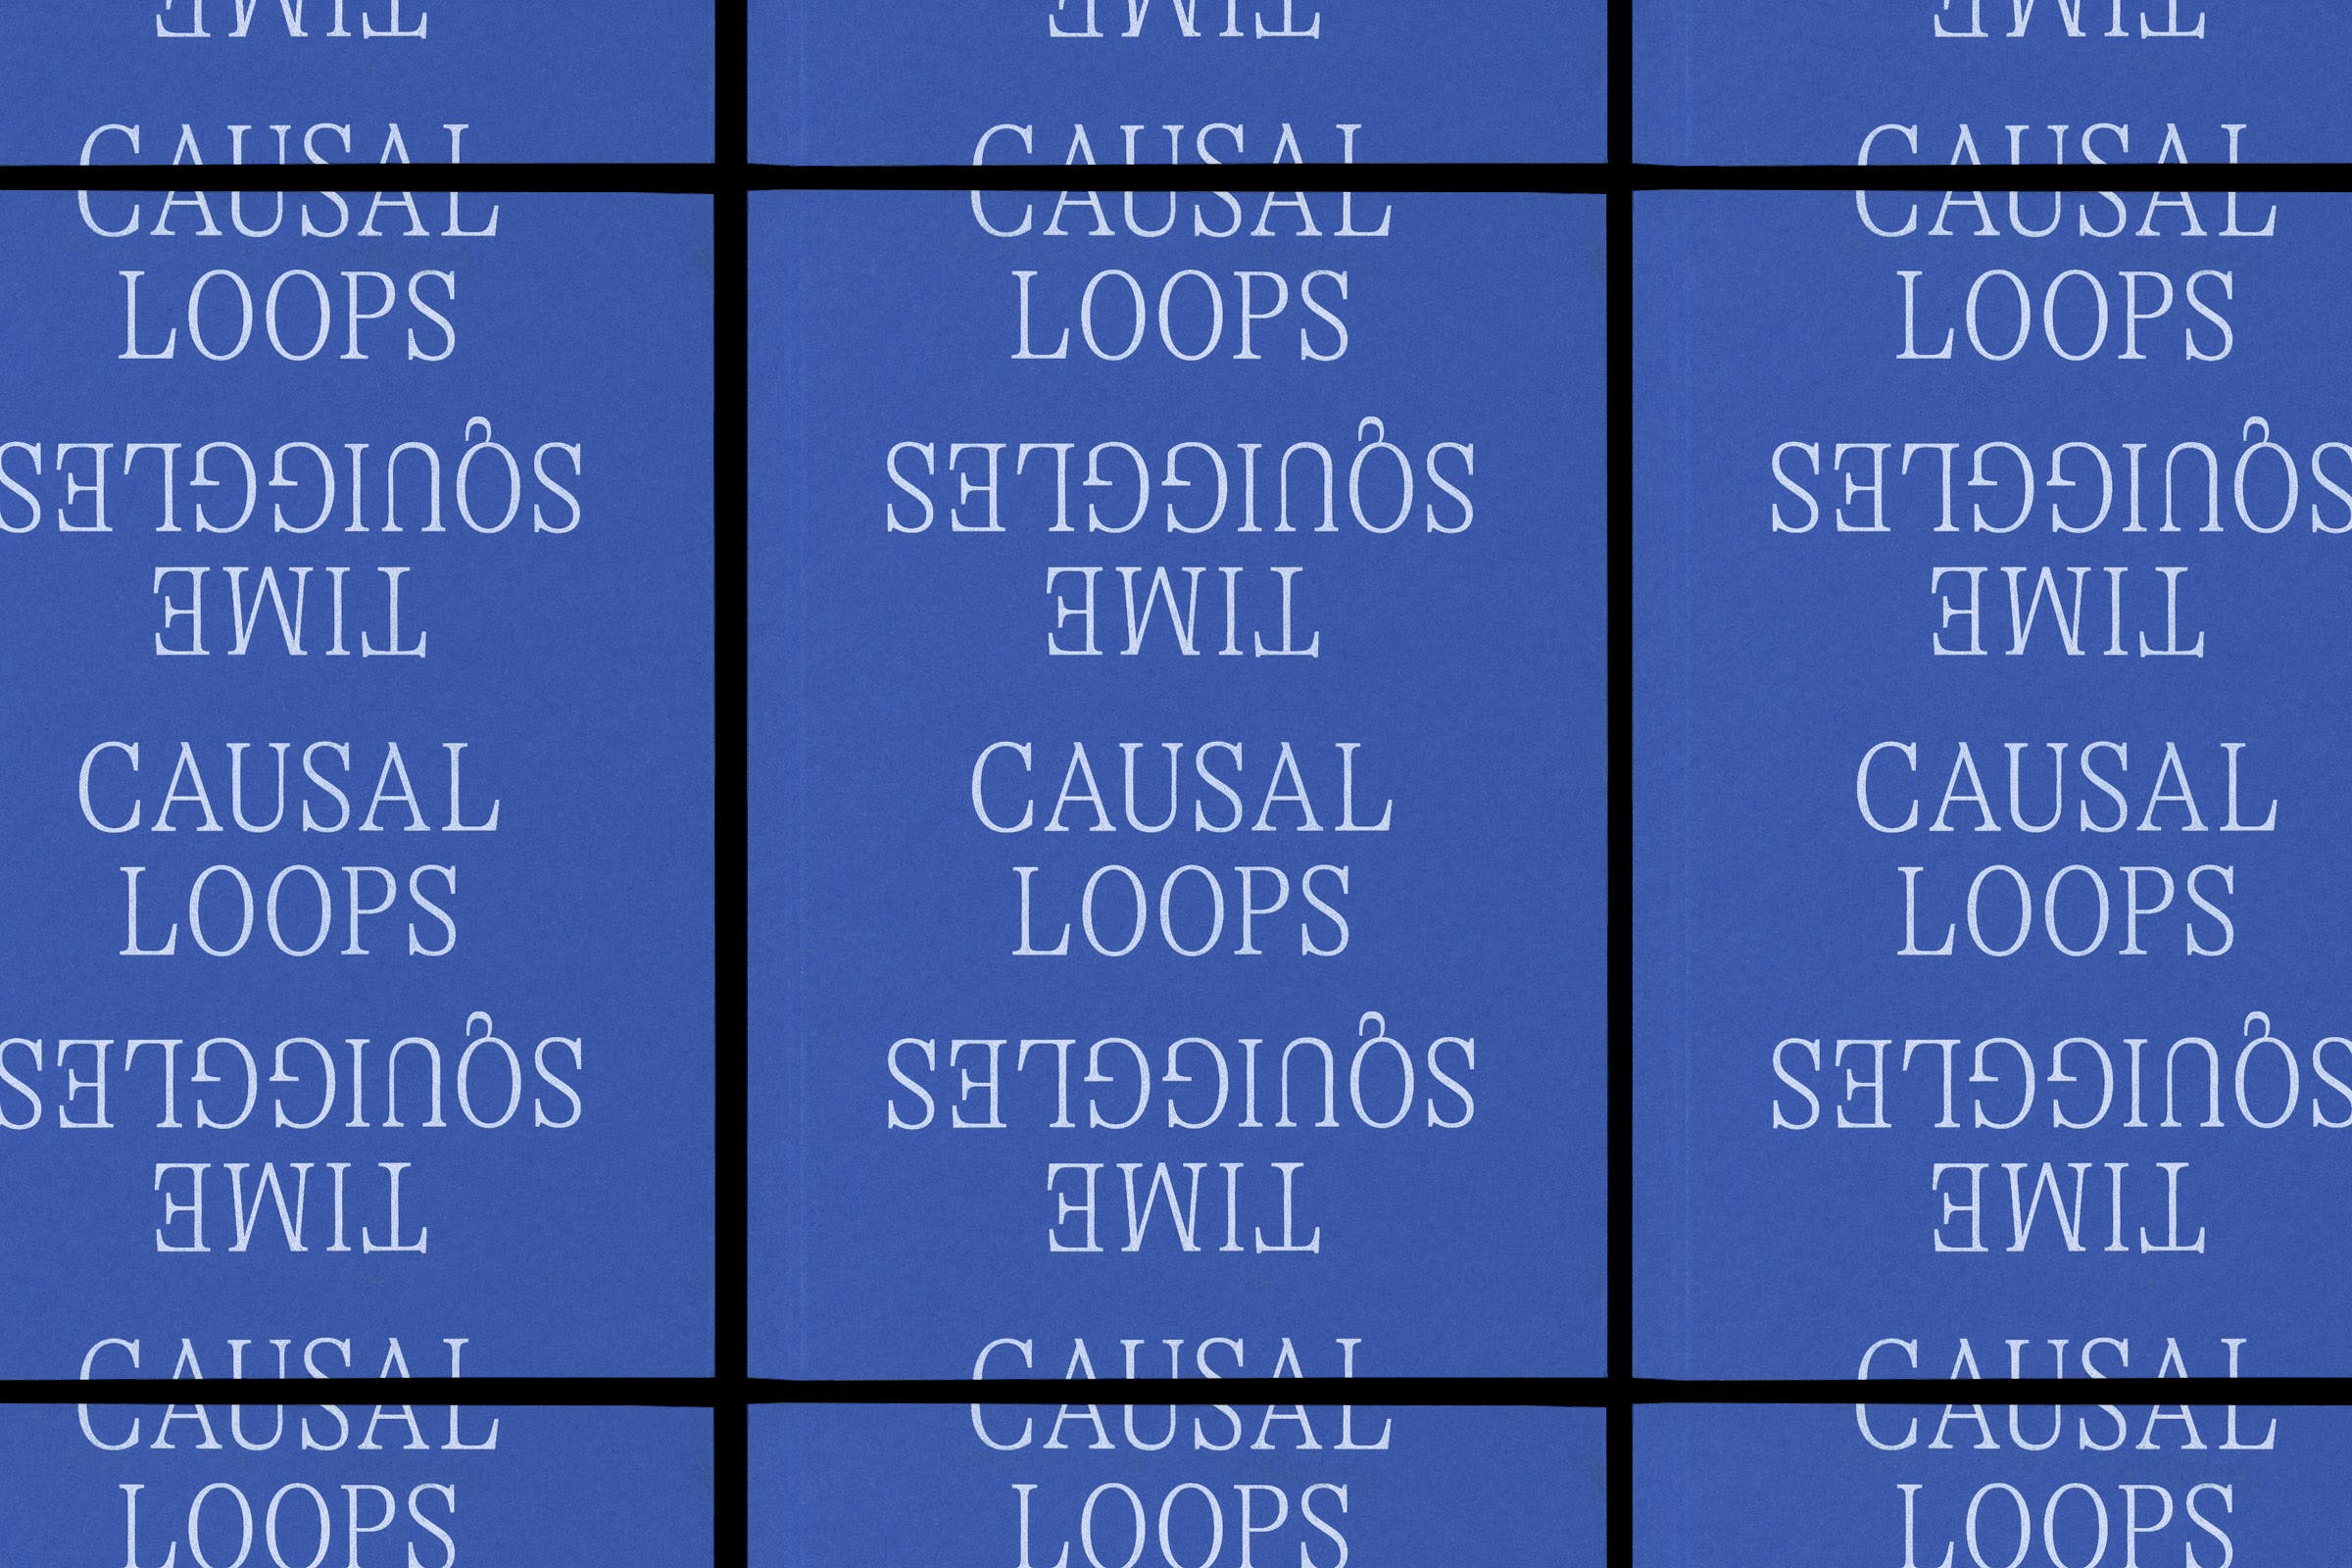 Fondazione Antonio Ratti, Causal Loops/Time Squiggles, Publication, Graphic Design by Wolfe Hall